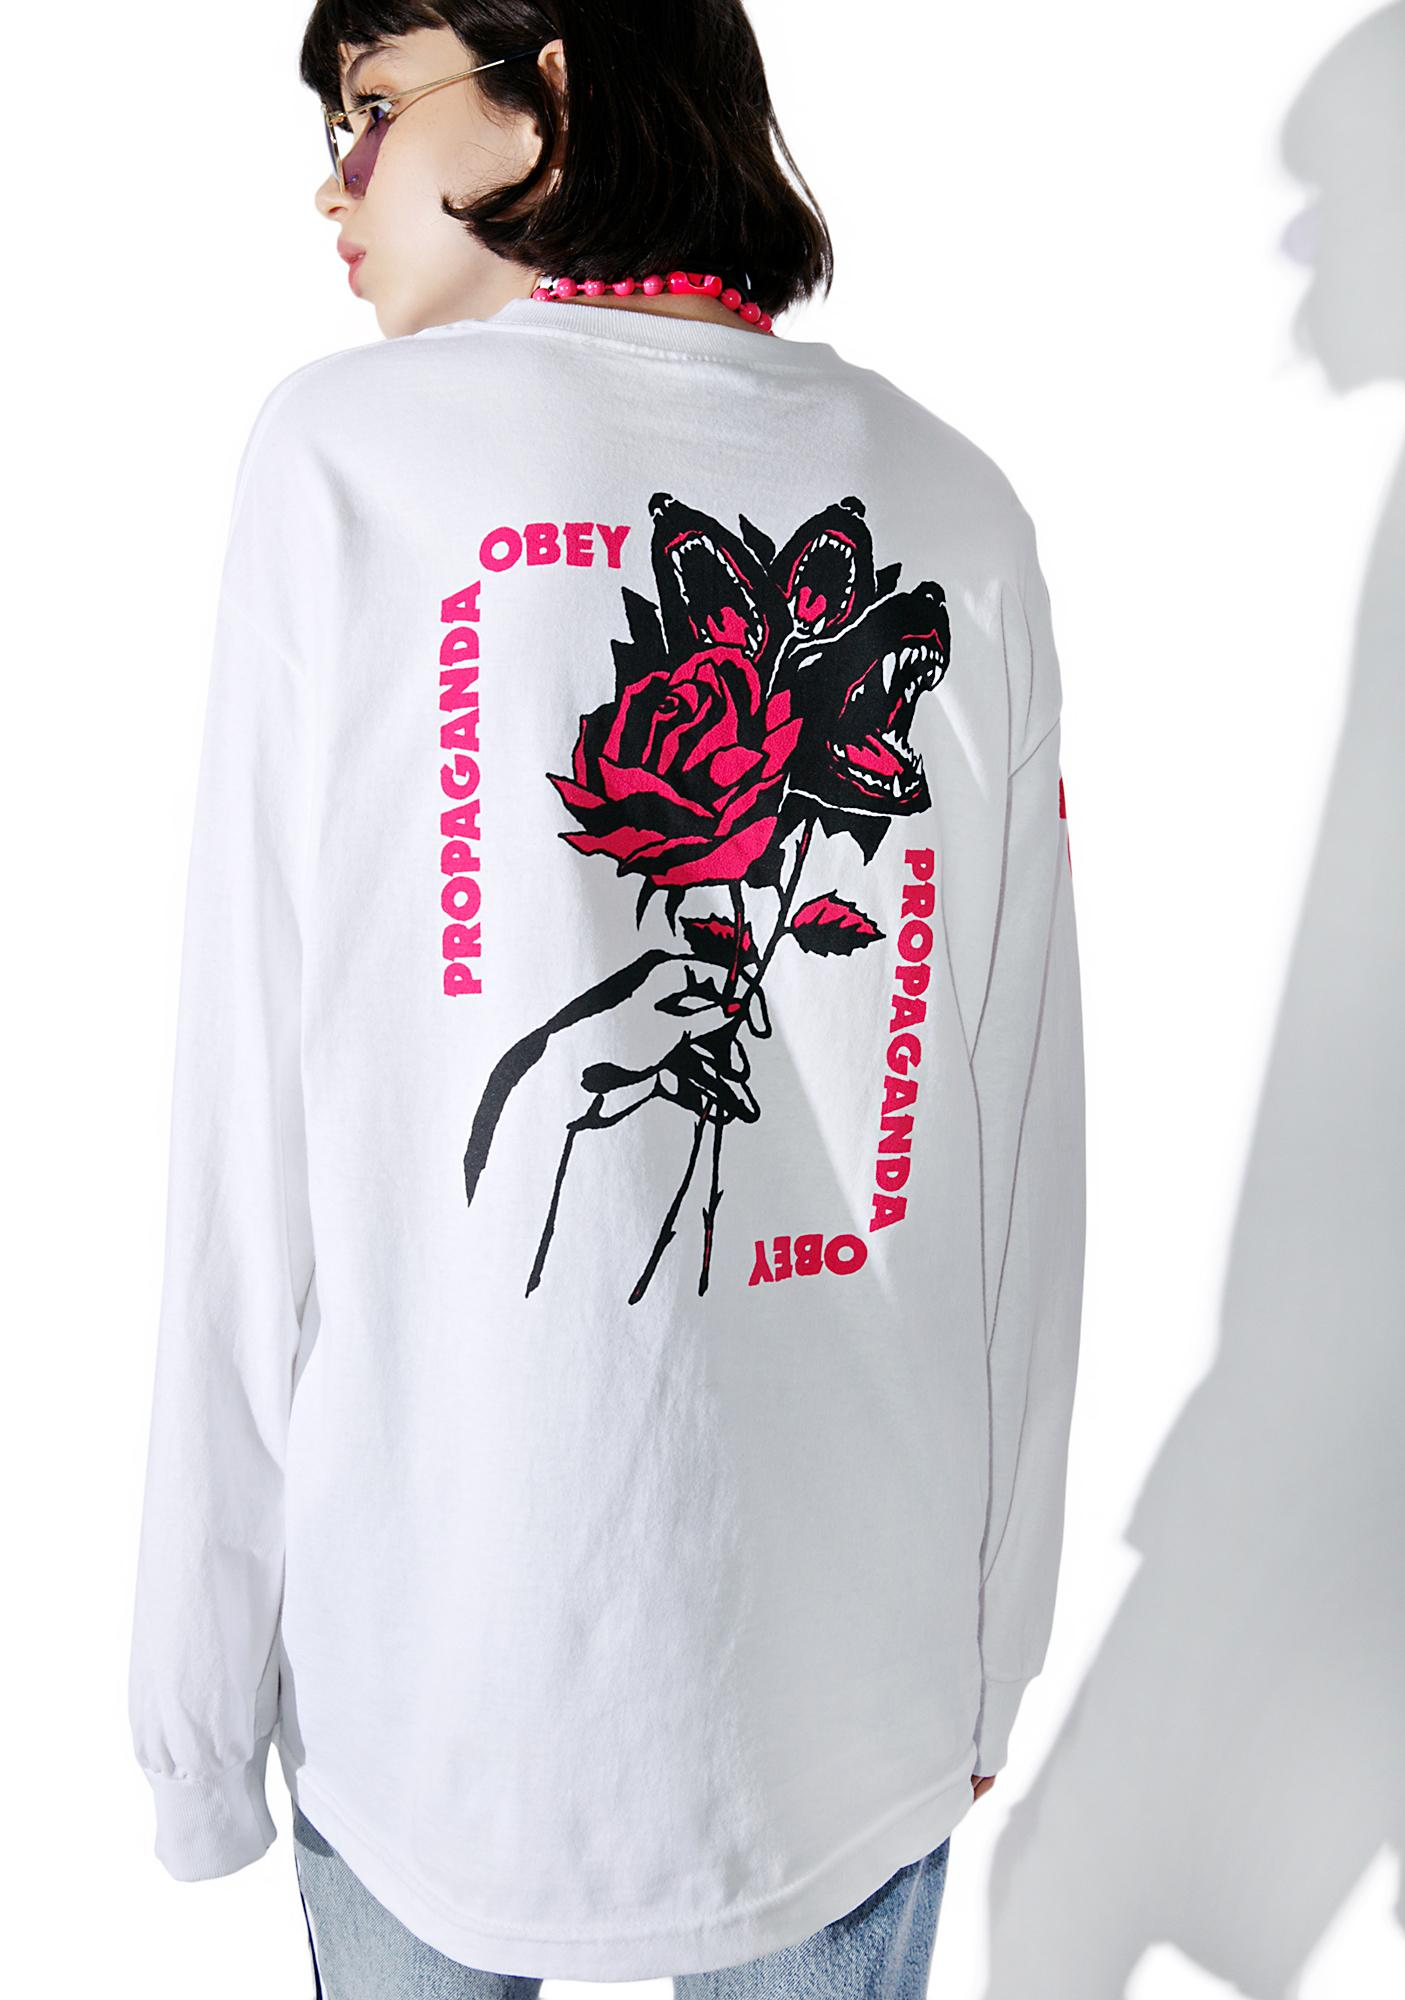 Obey Modern Lovers Long Sleeve Tee